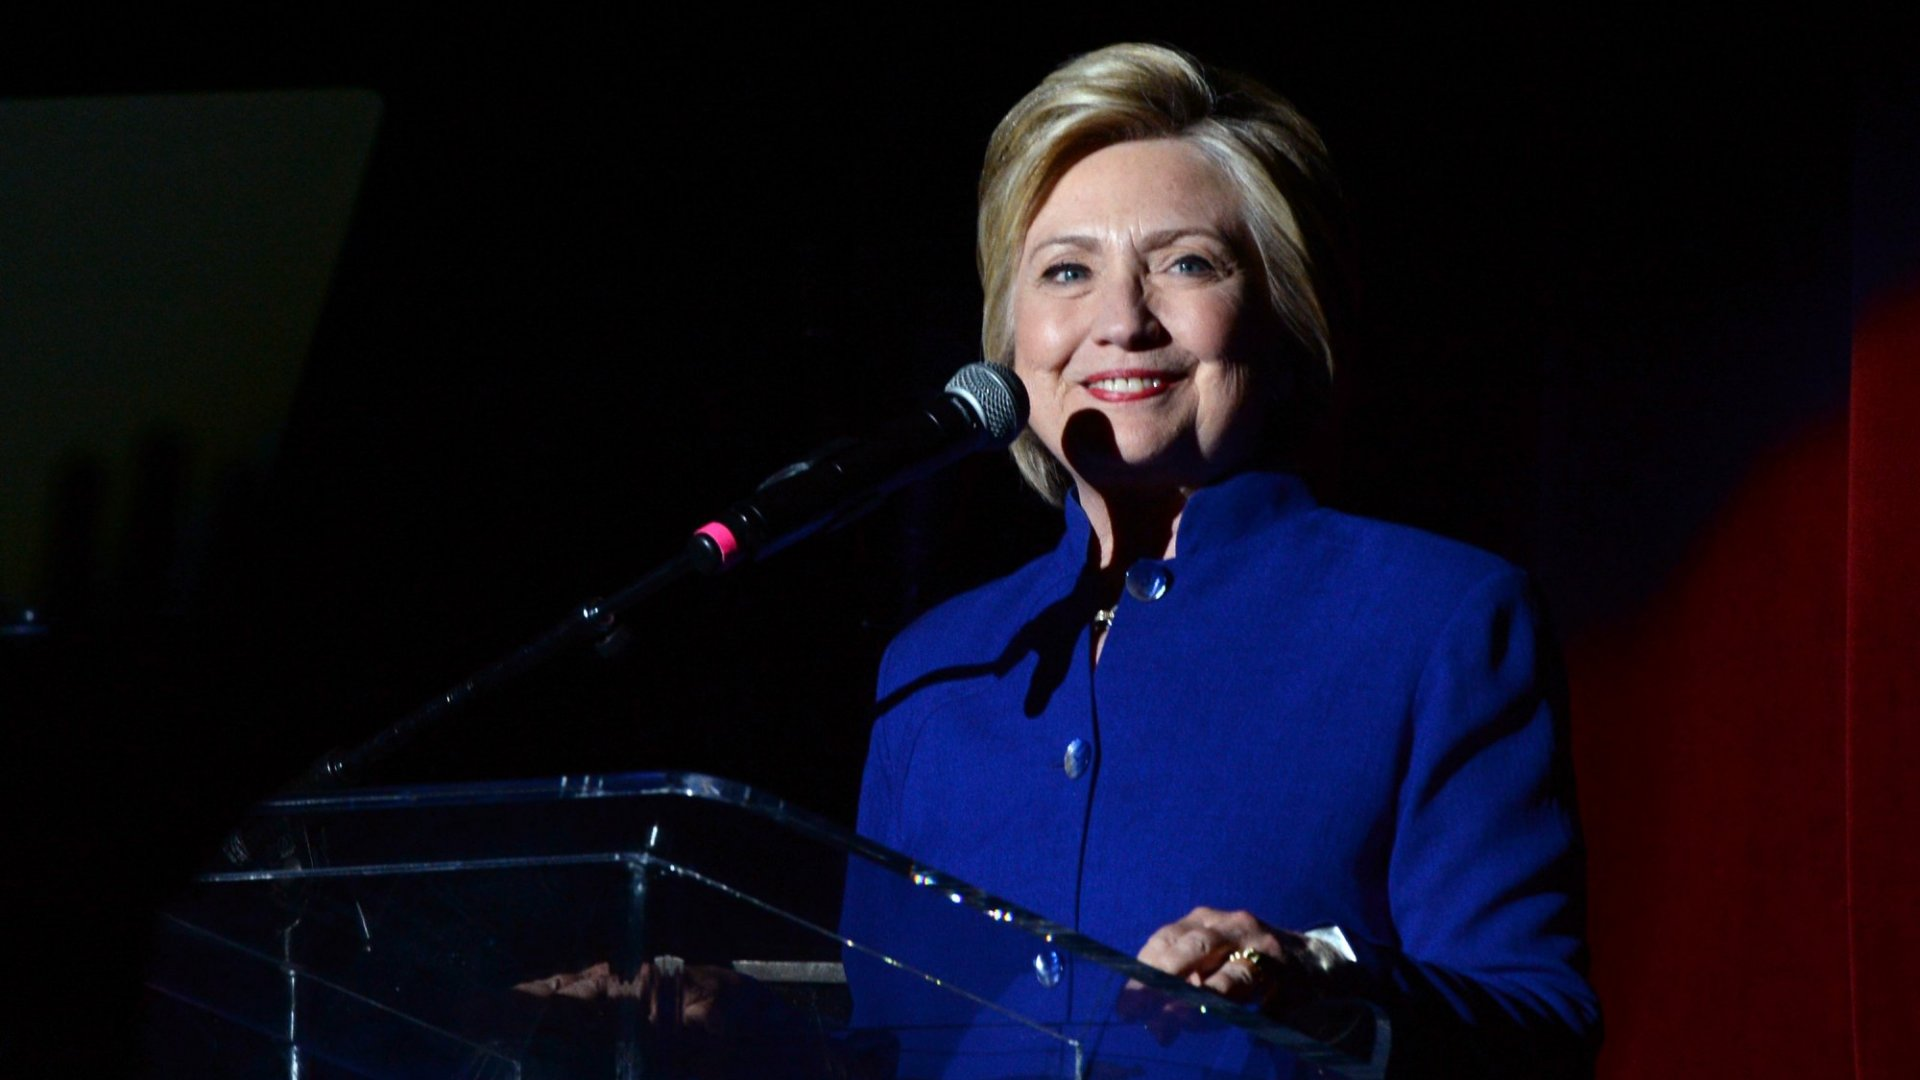 Women Entrepreneurs: They're With Hillary